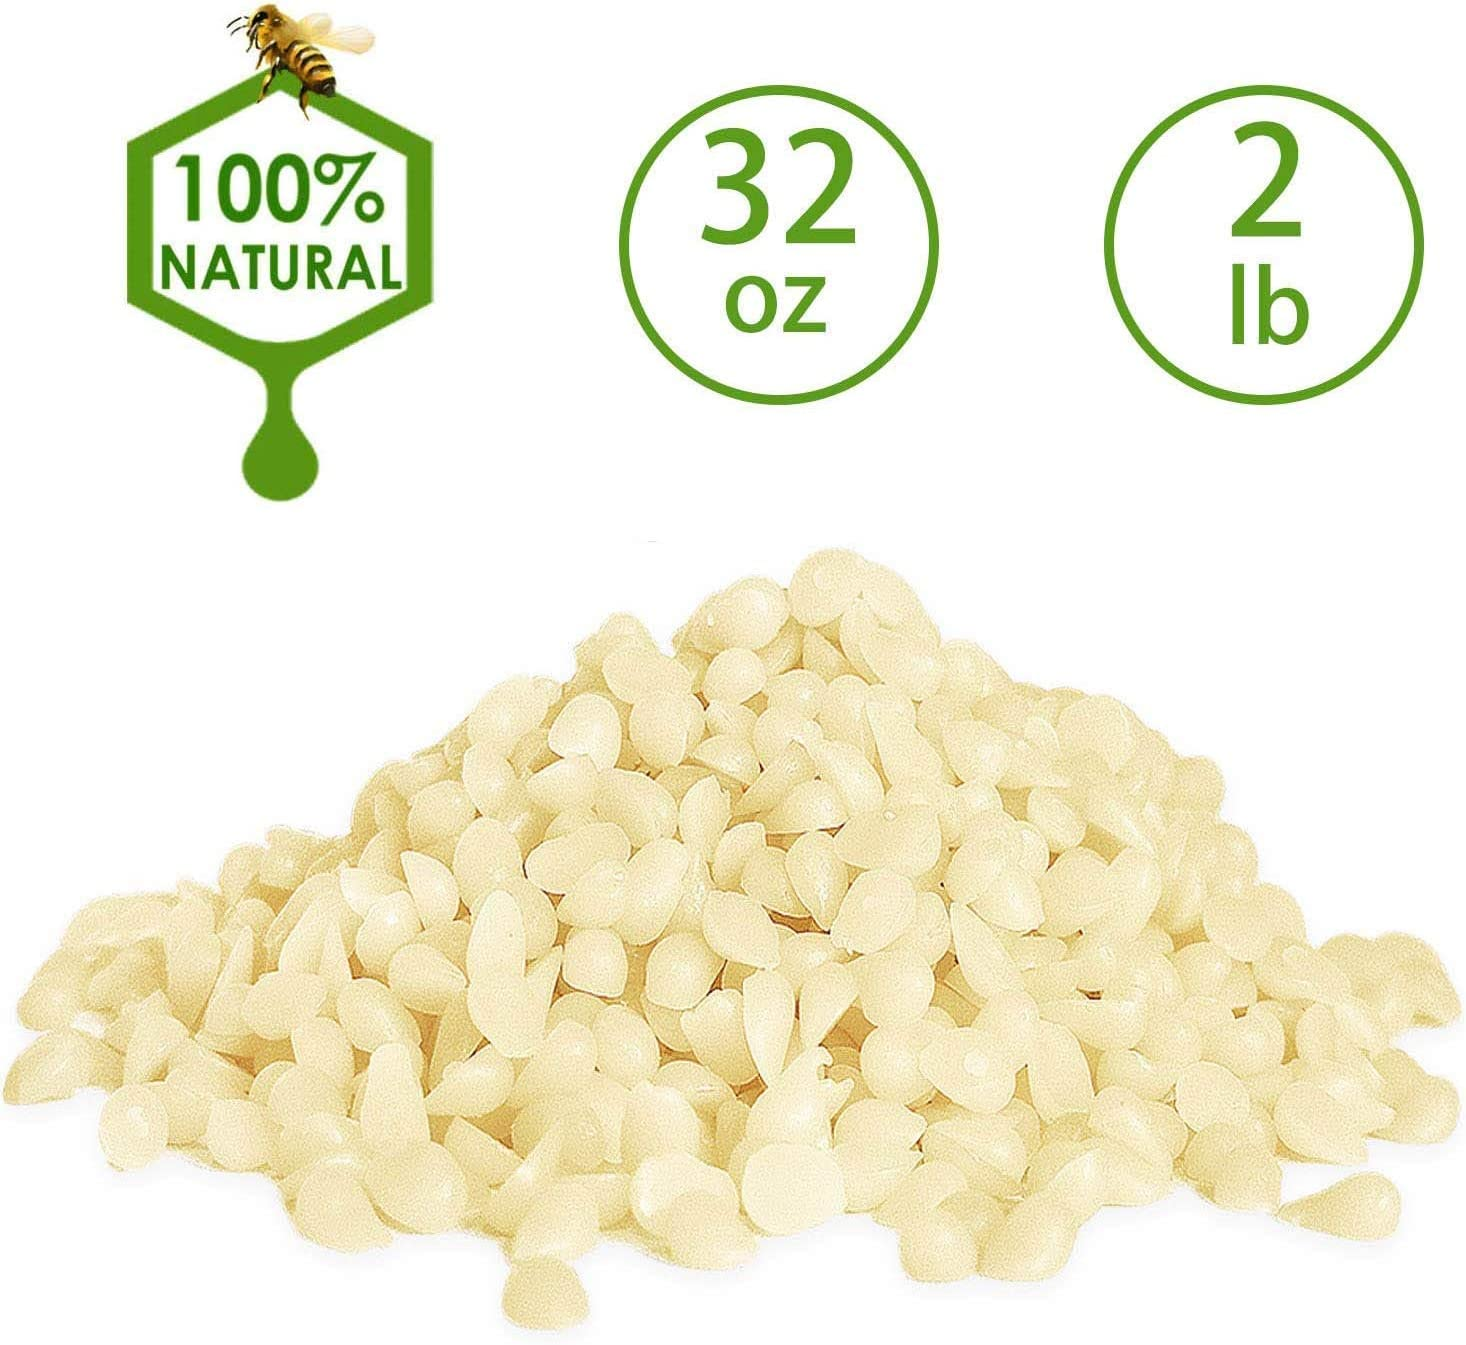 Howemon White Beeswax Pellets 32 oz 100% Pure and Natural Triple Filtered for Skin, Face, Body and Hair Care DIY Creams, Lotions, Lip Balm and Soap Making Supplies.